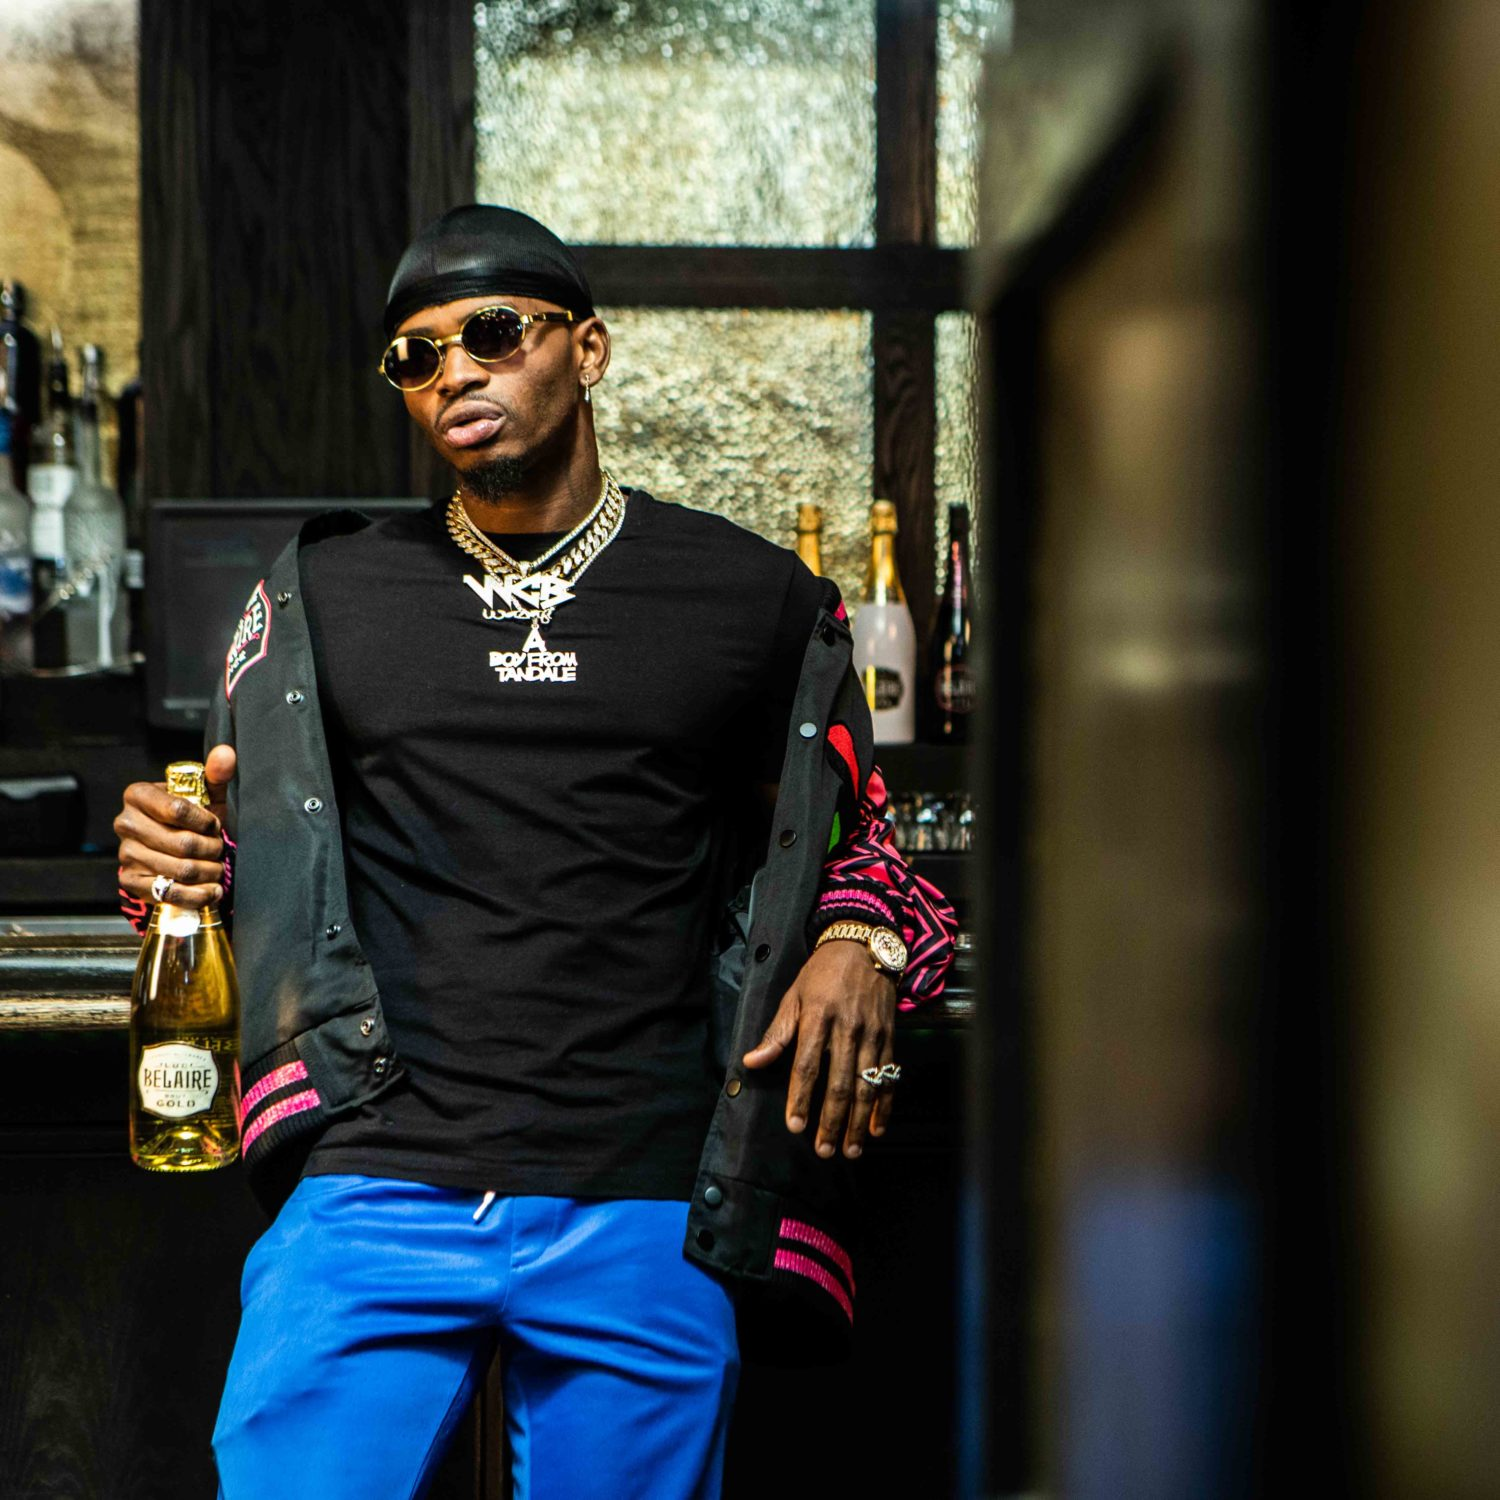 Exclusive: Behind the Scenes with Diamond Platnumz and Belaire